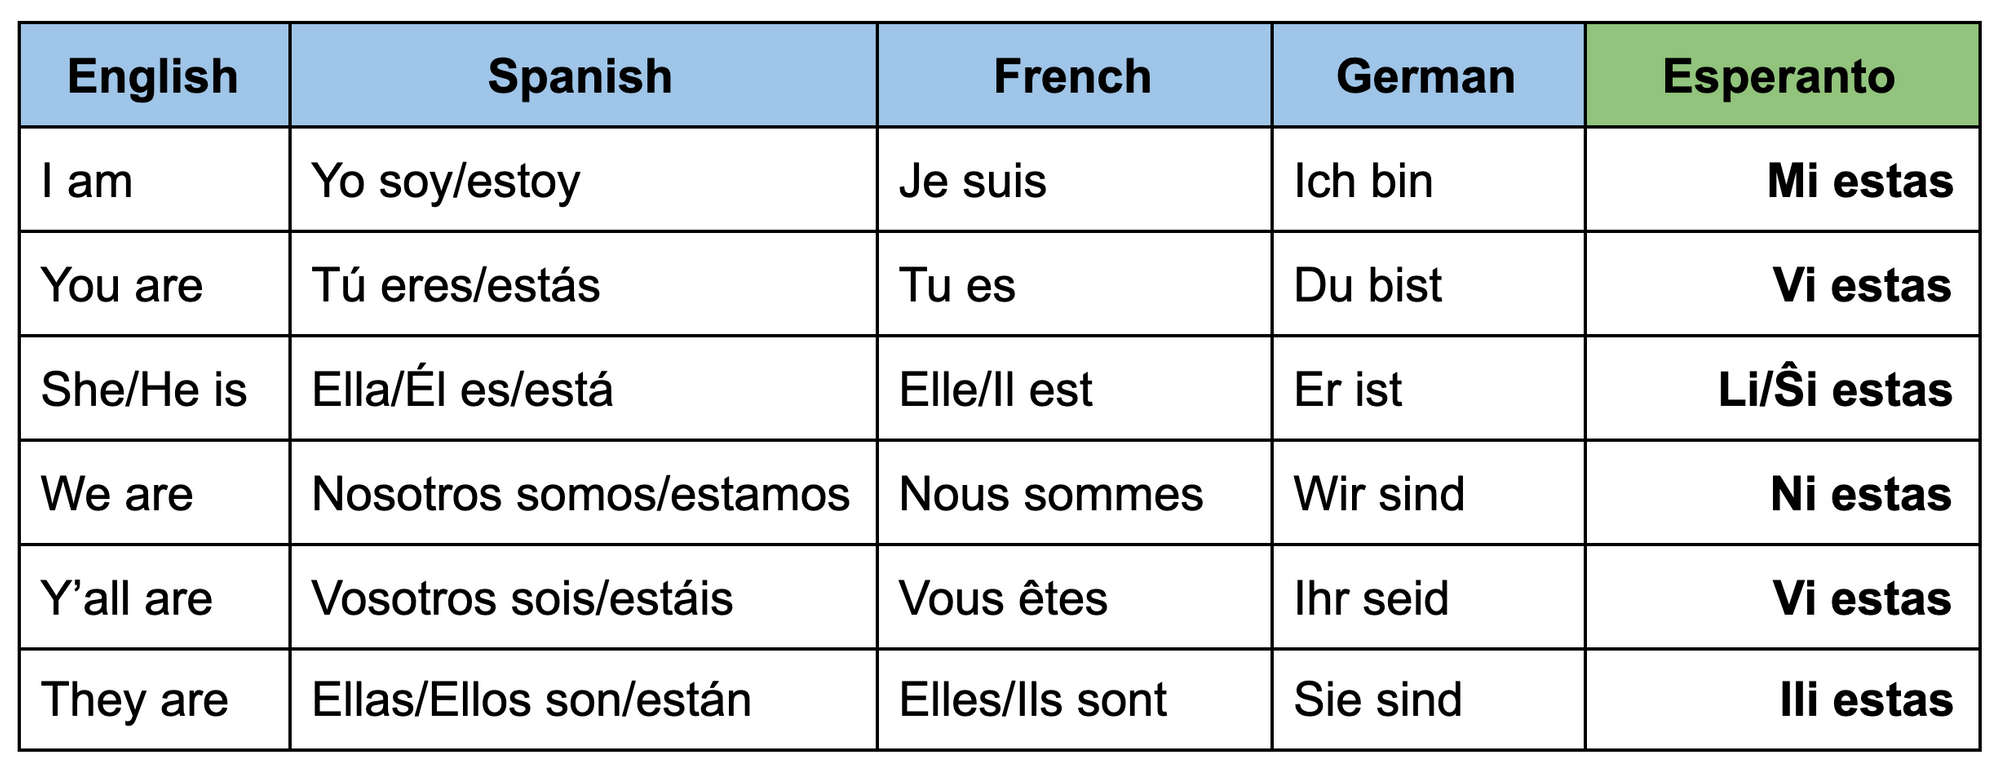 """A table of present tense conjugations of the verb """"to be"""" in Esperanto, English, Spanish, French, and German. In Esperanto, the verb is the same, """"estas"""", for every person, whereas in the other languages, the verb changes for each person, for example: I am, you are, he is"""